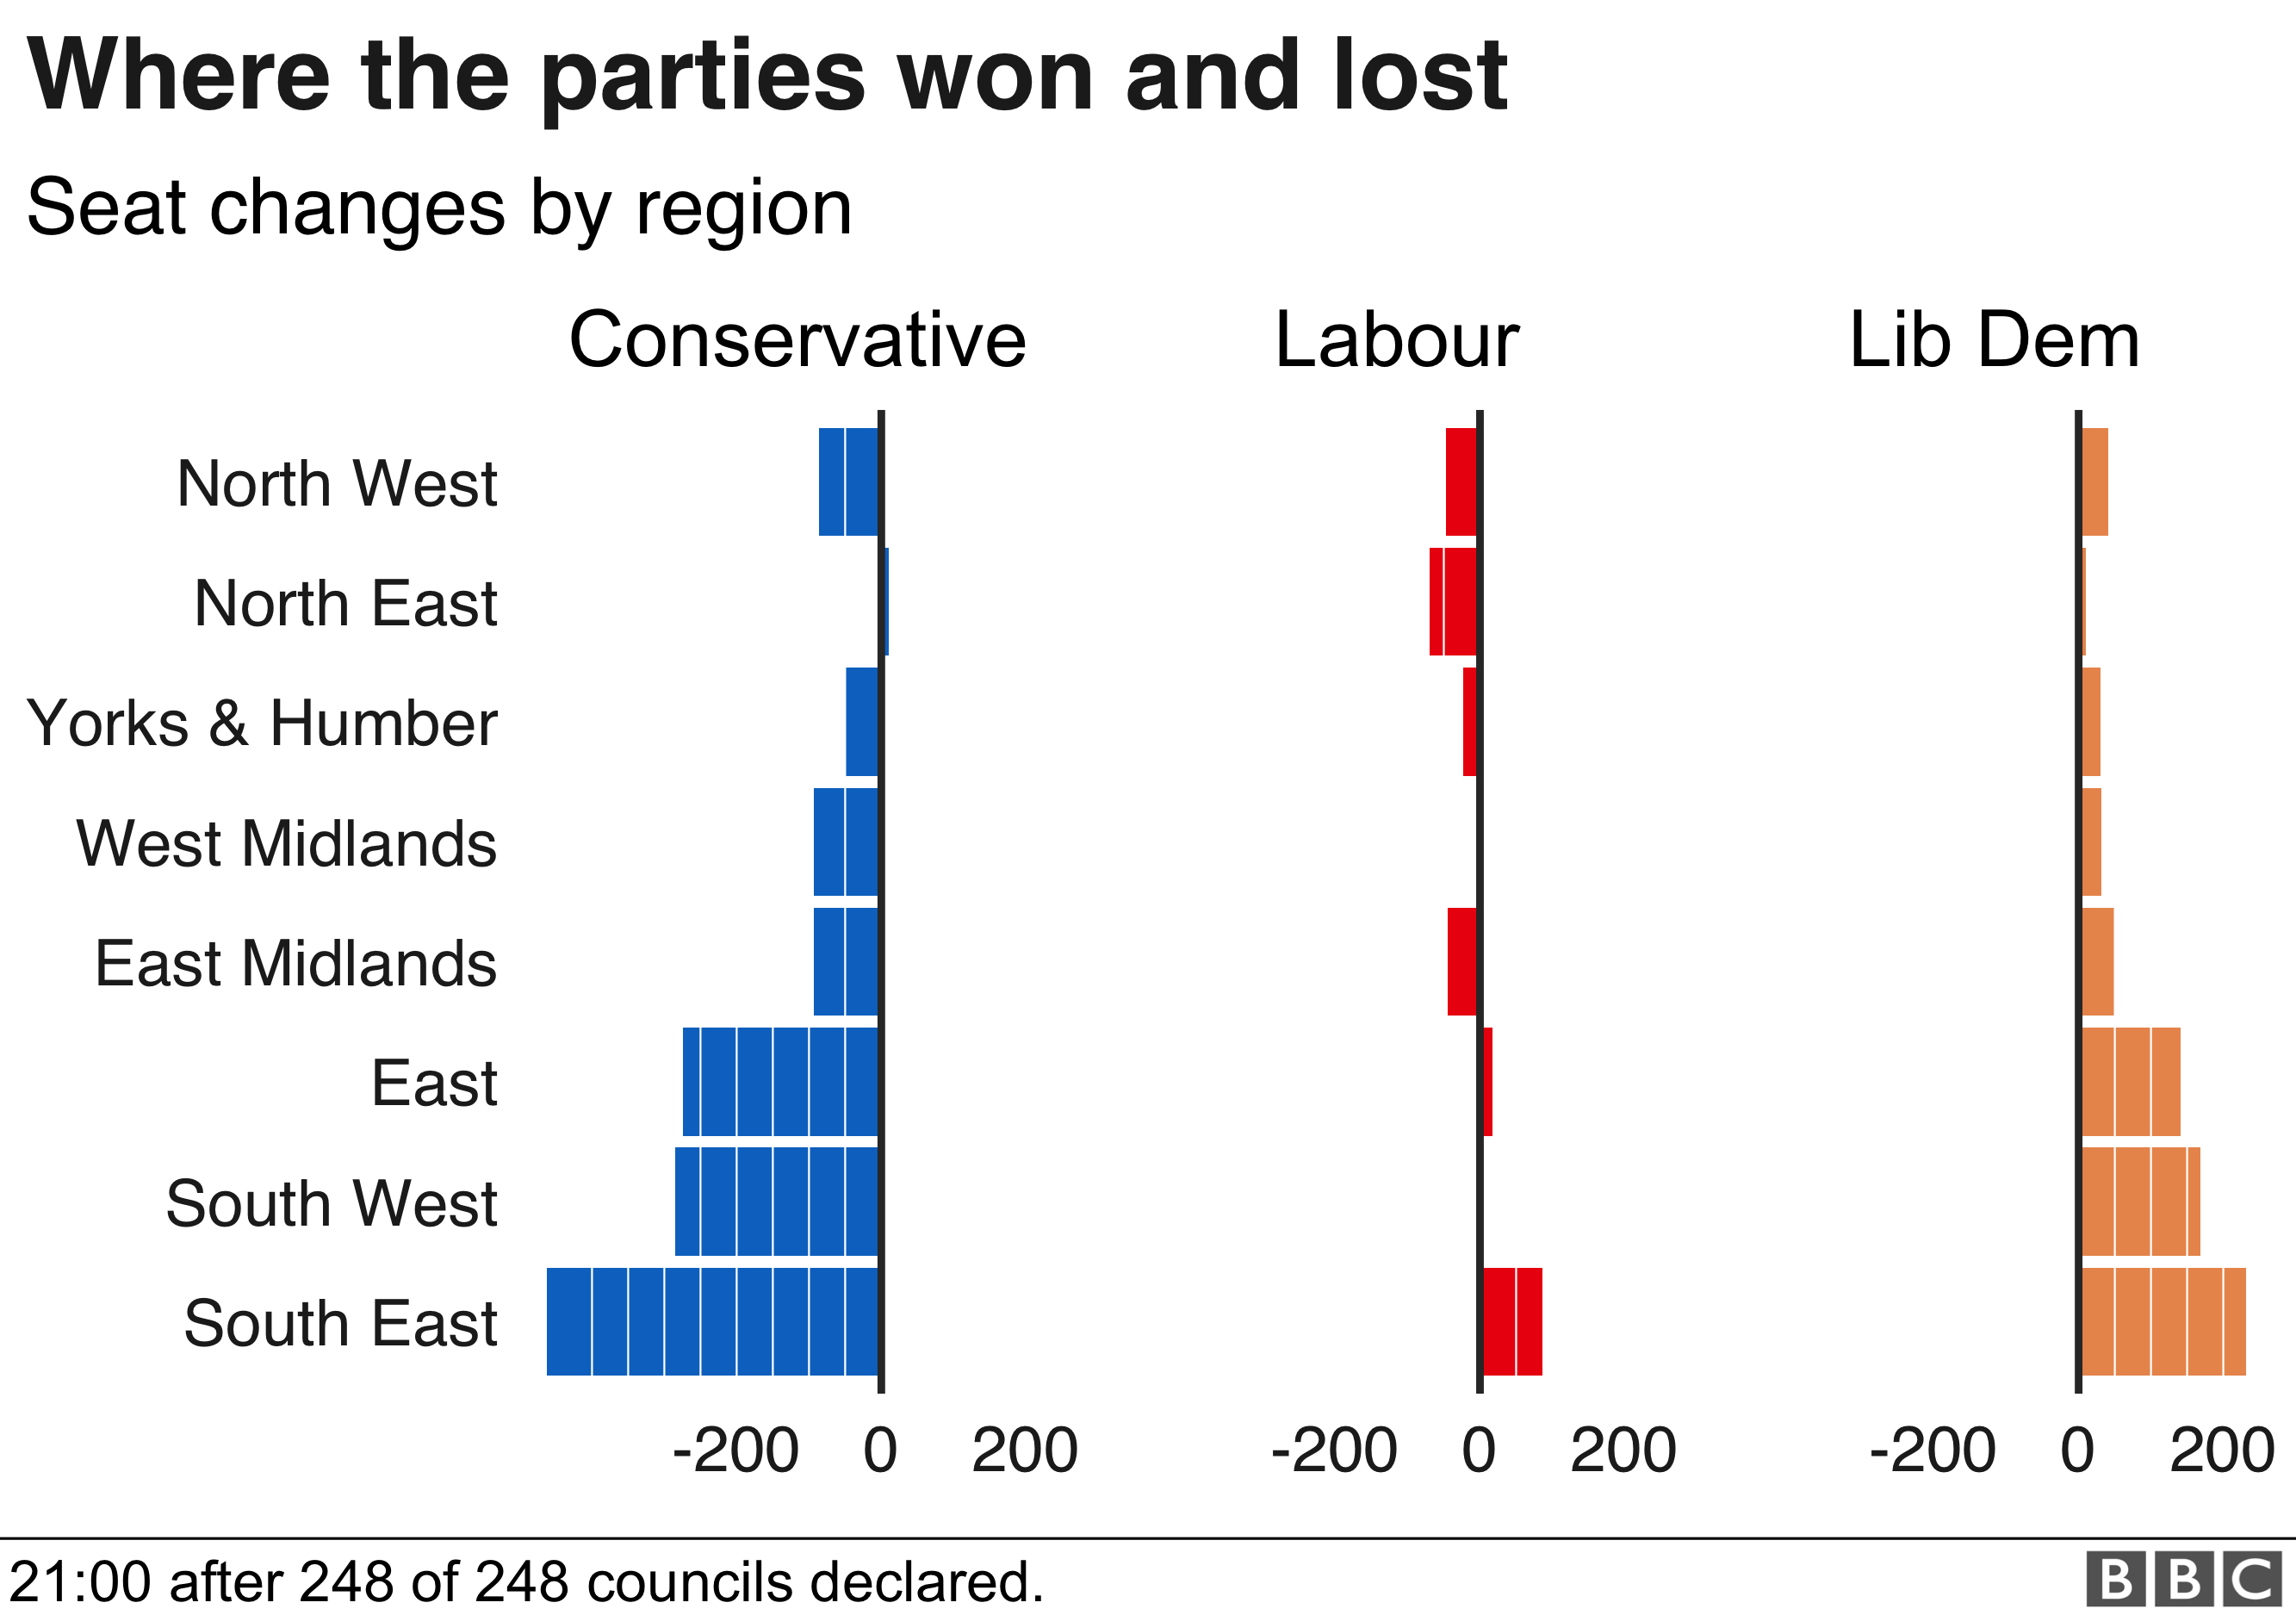 Tories did worst in the East, South East and South West, areas where the Lib Dems did best.